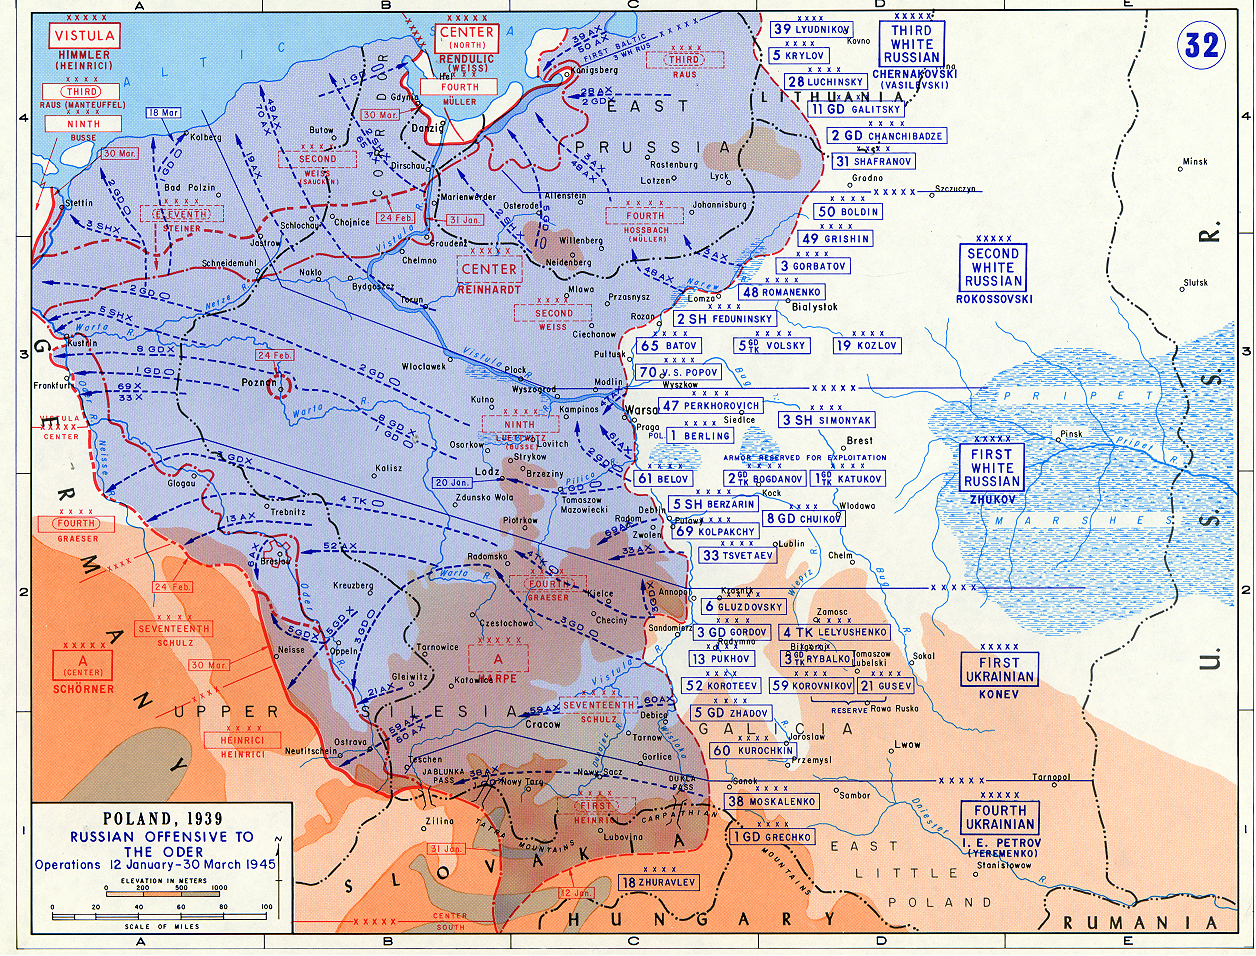 Map of Russian Offensive to the Oder River (January-March 1945)